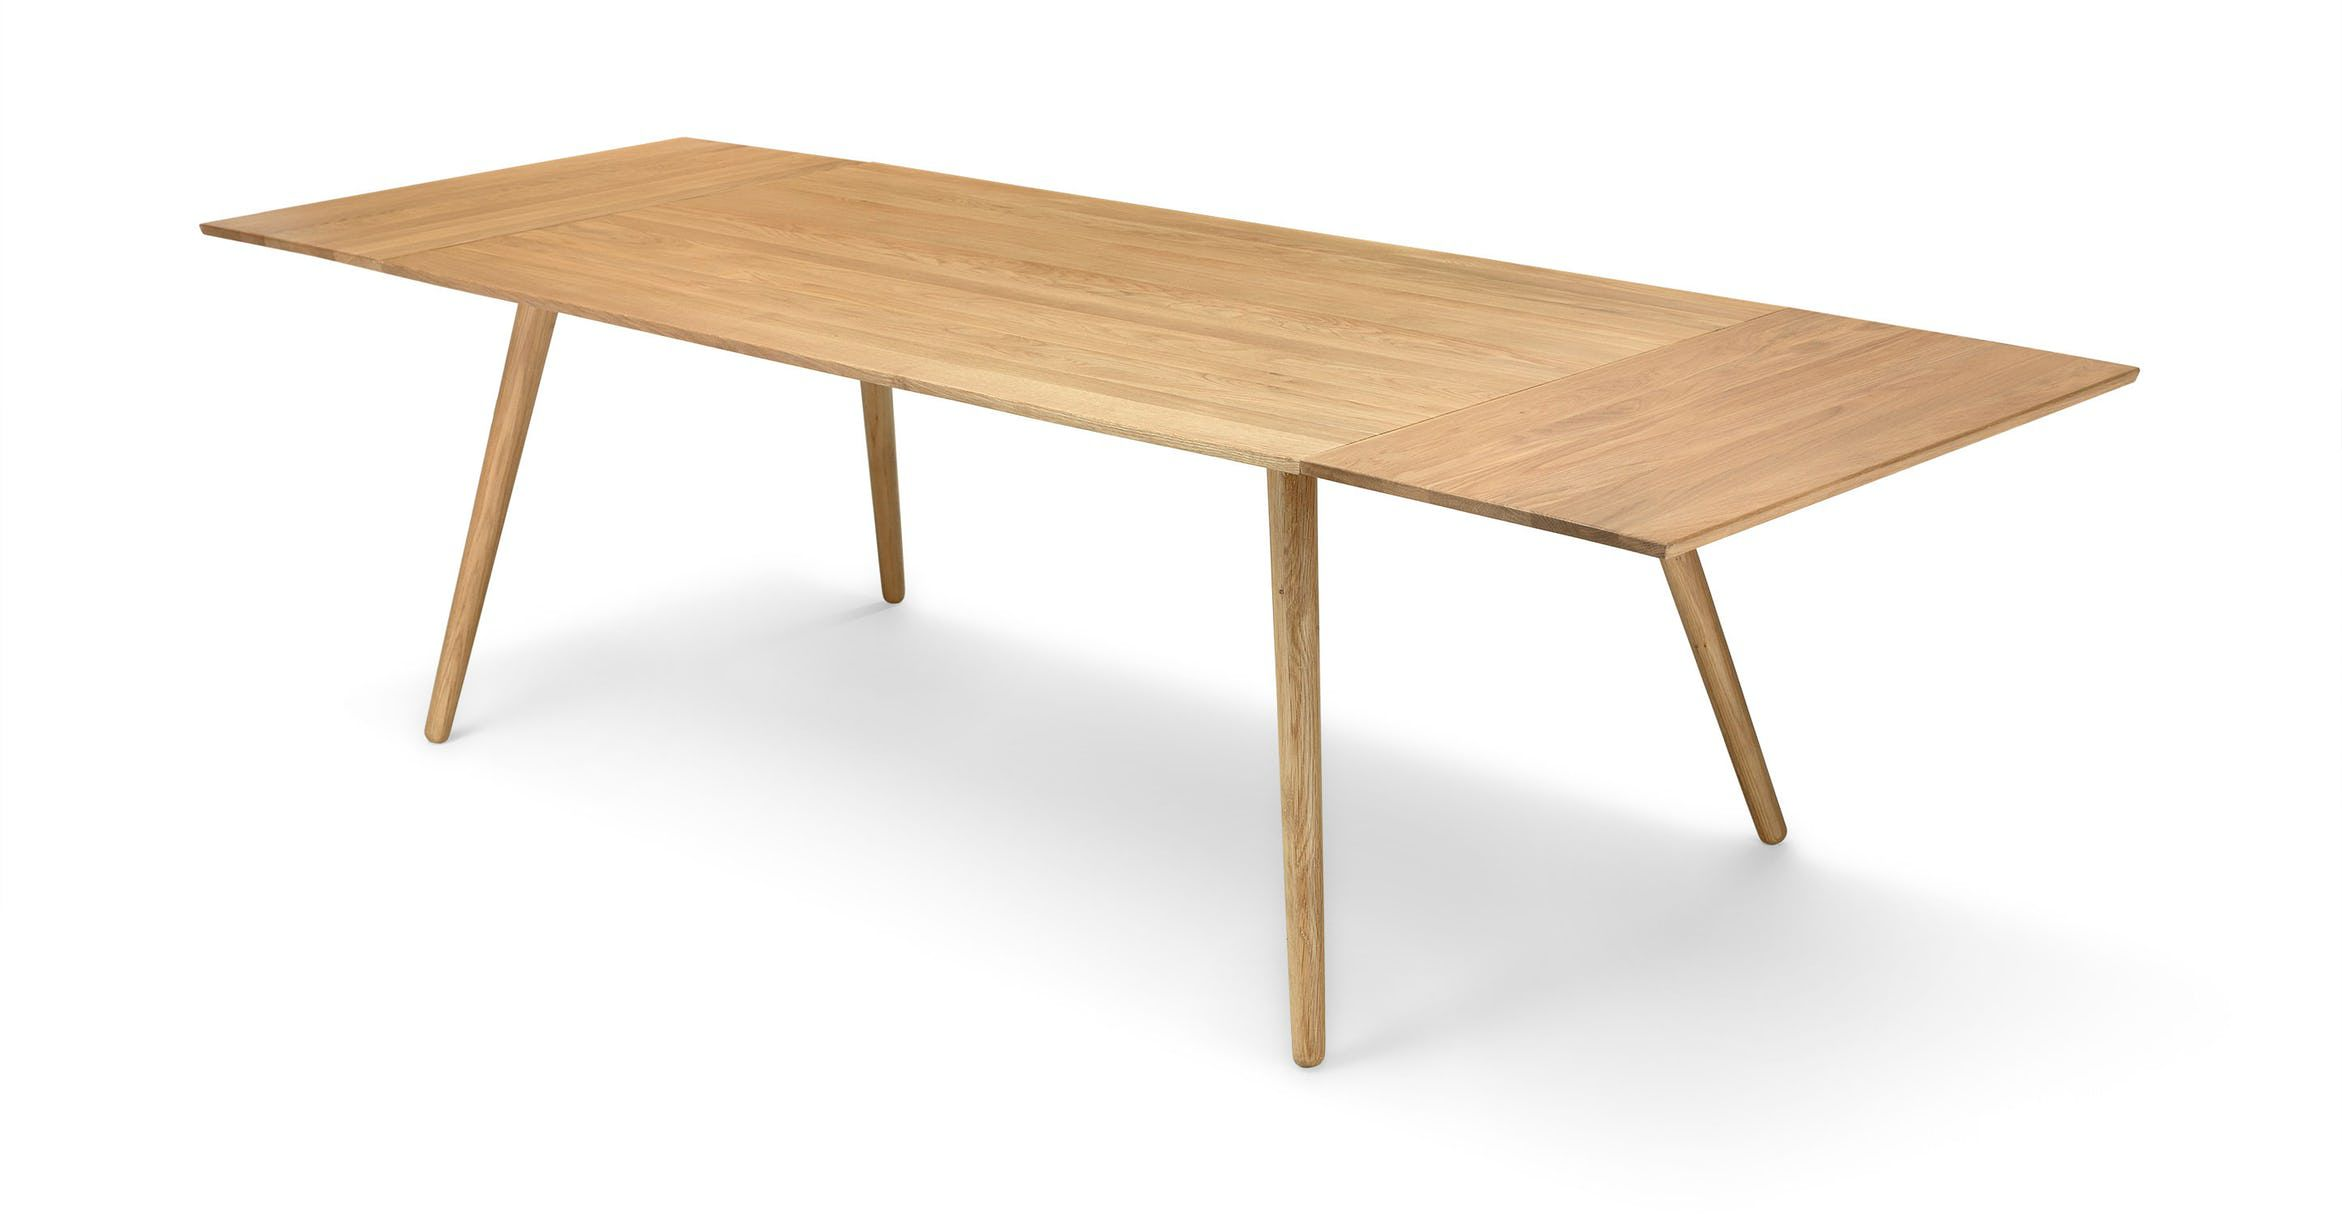 A long, midcentury modern style dining table in light oak finish with tapered legs.